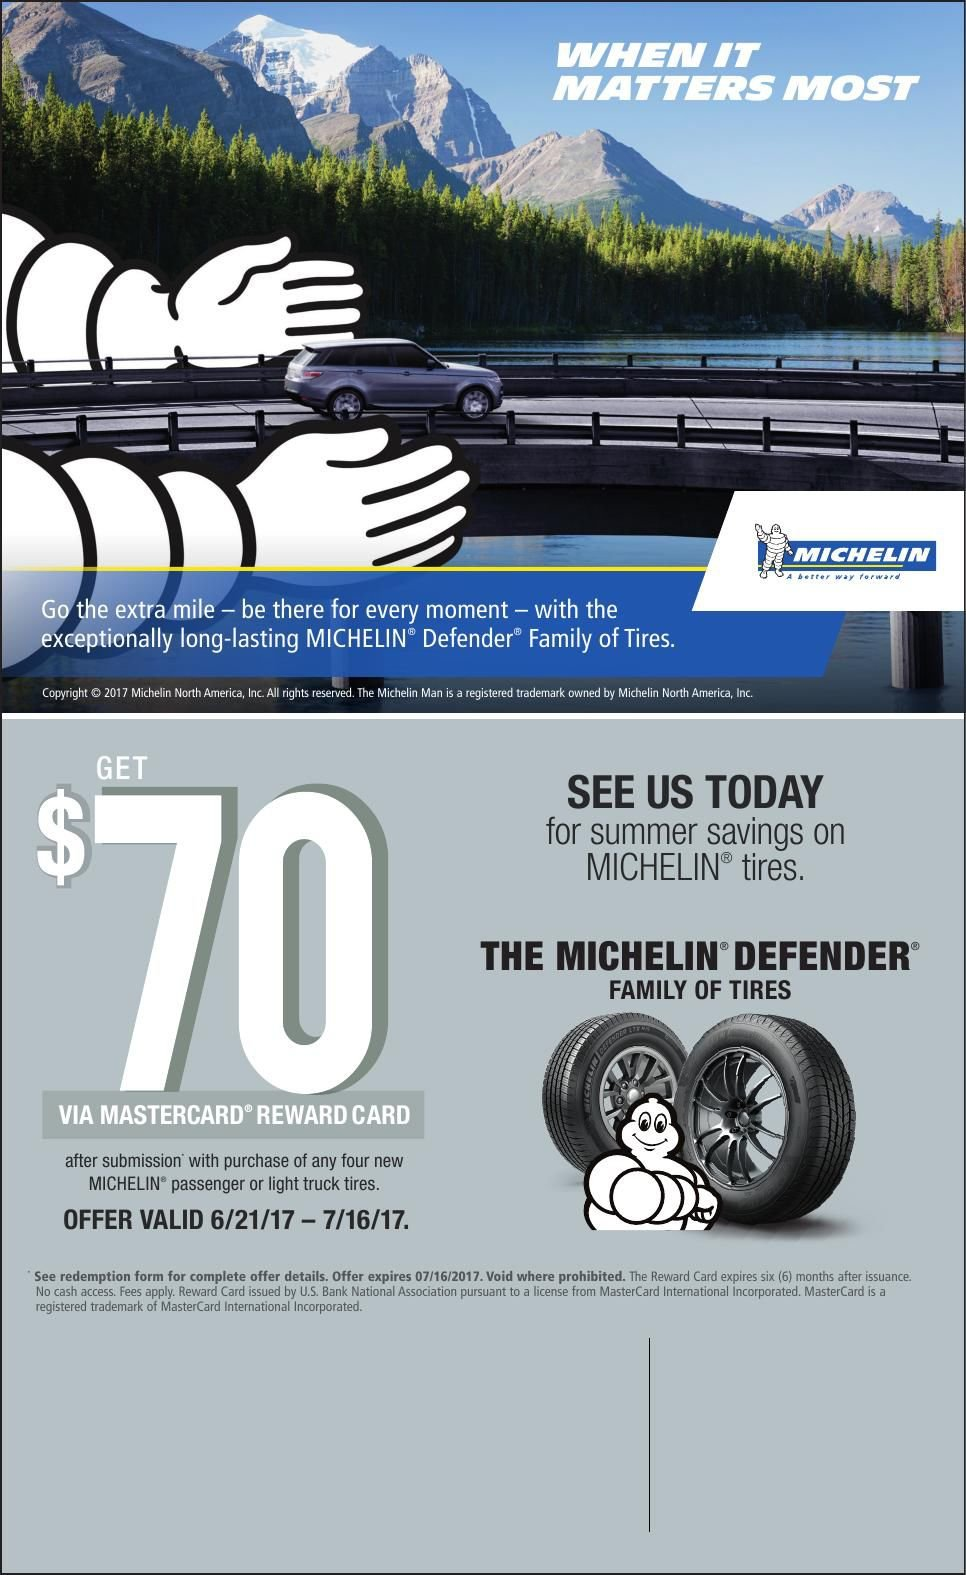 Michelin Tire Dealers to Advertise 2017 Summer Rebate | Advertise ...